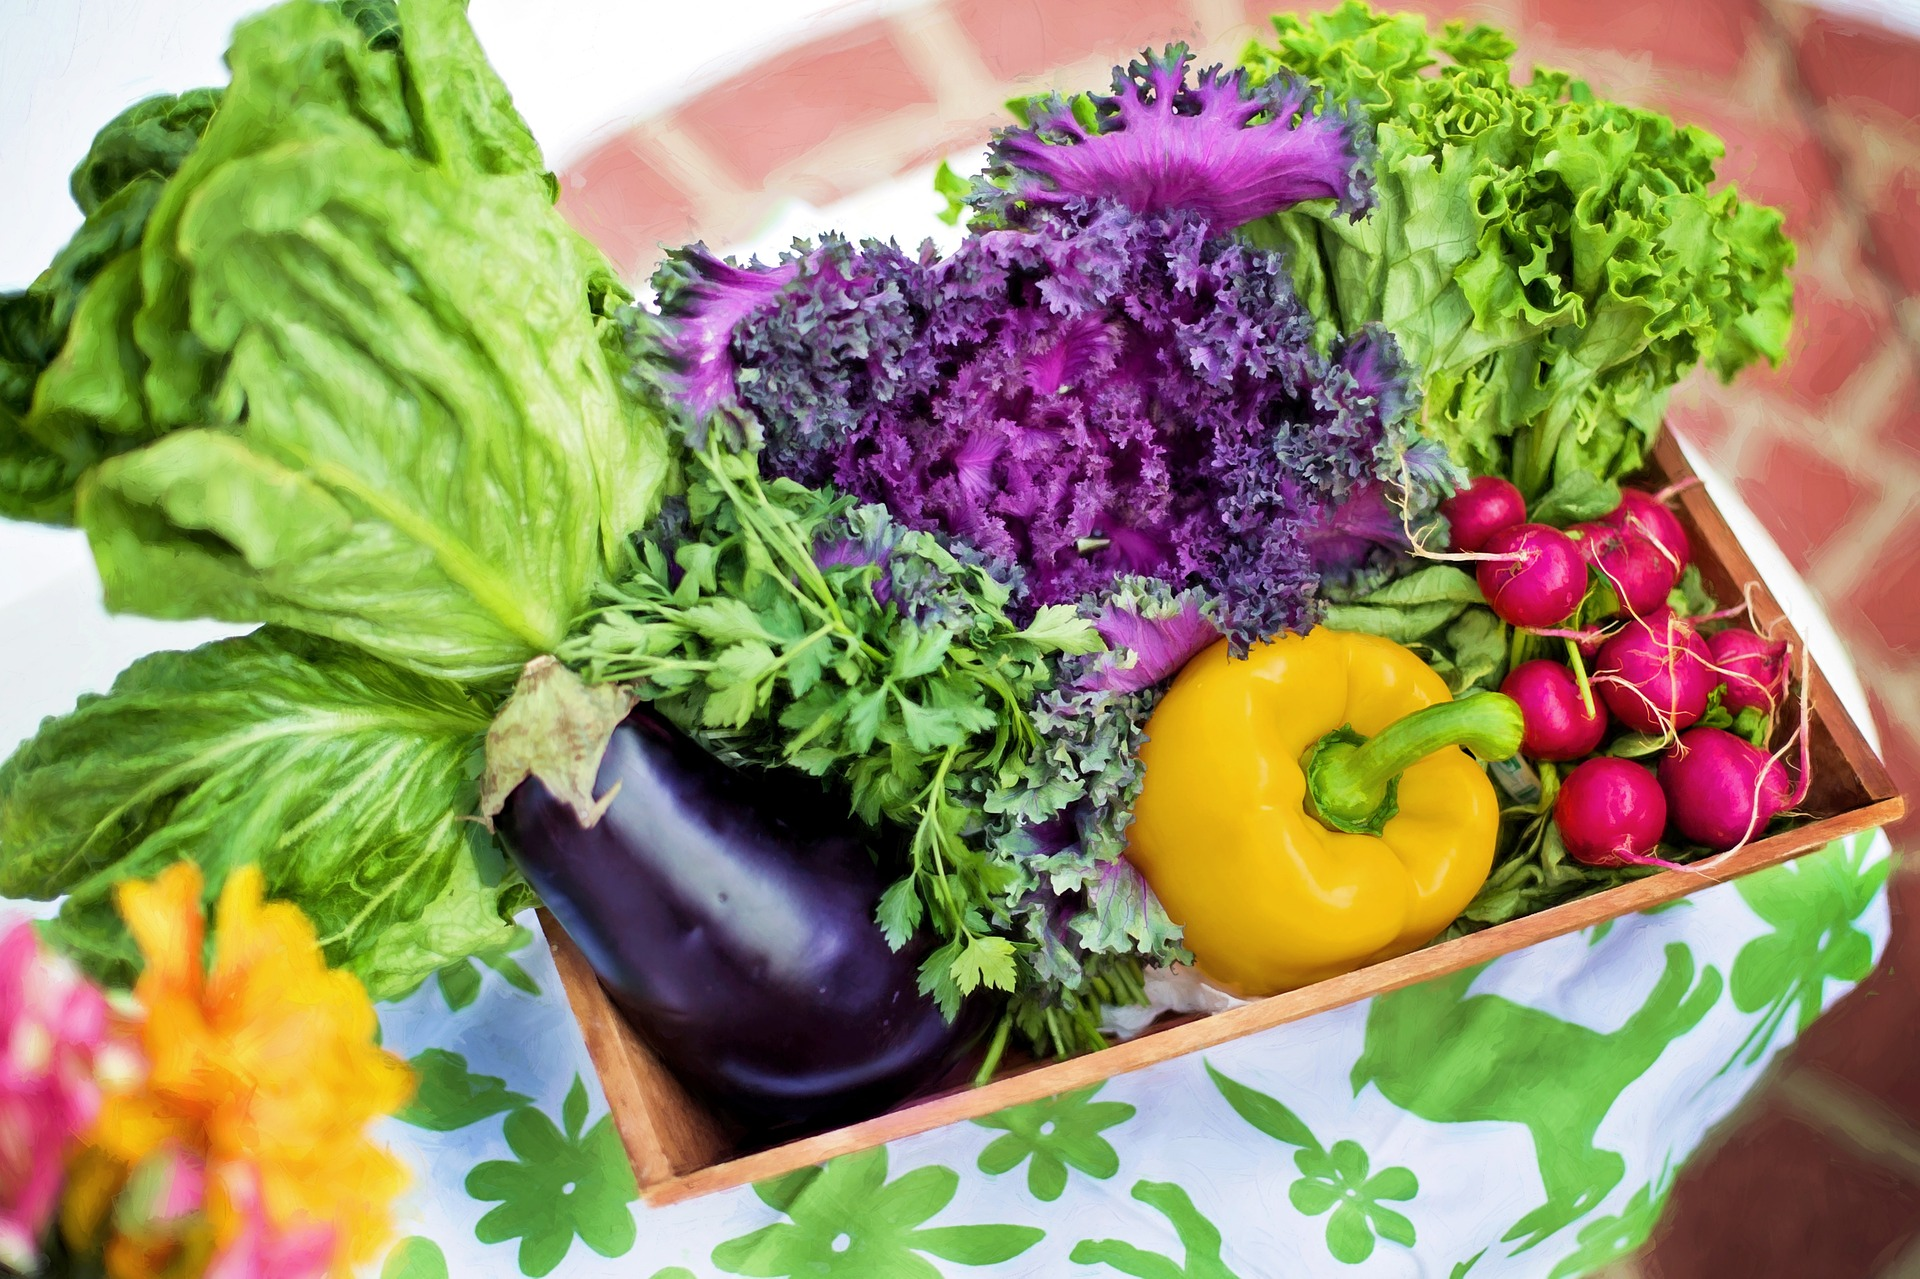 Many vegetables in the basket